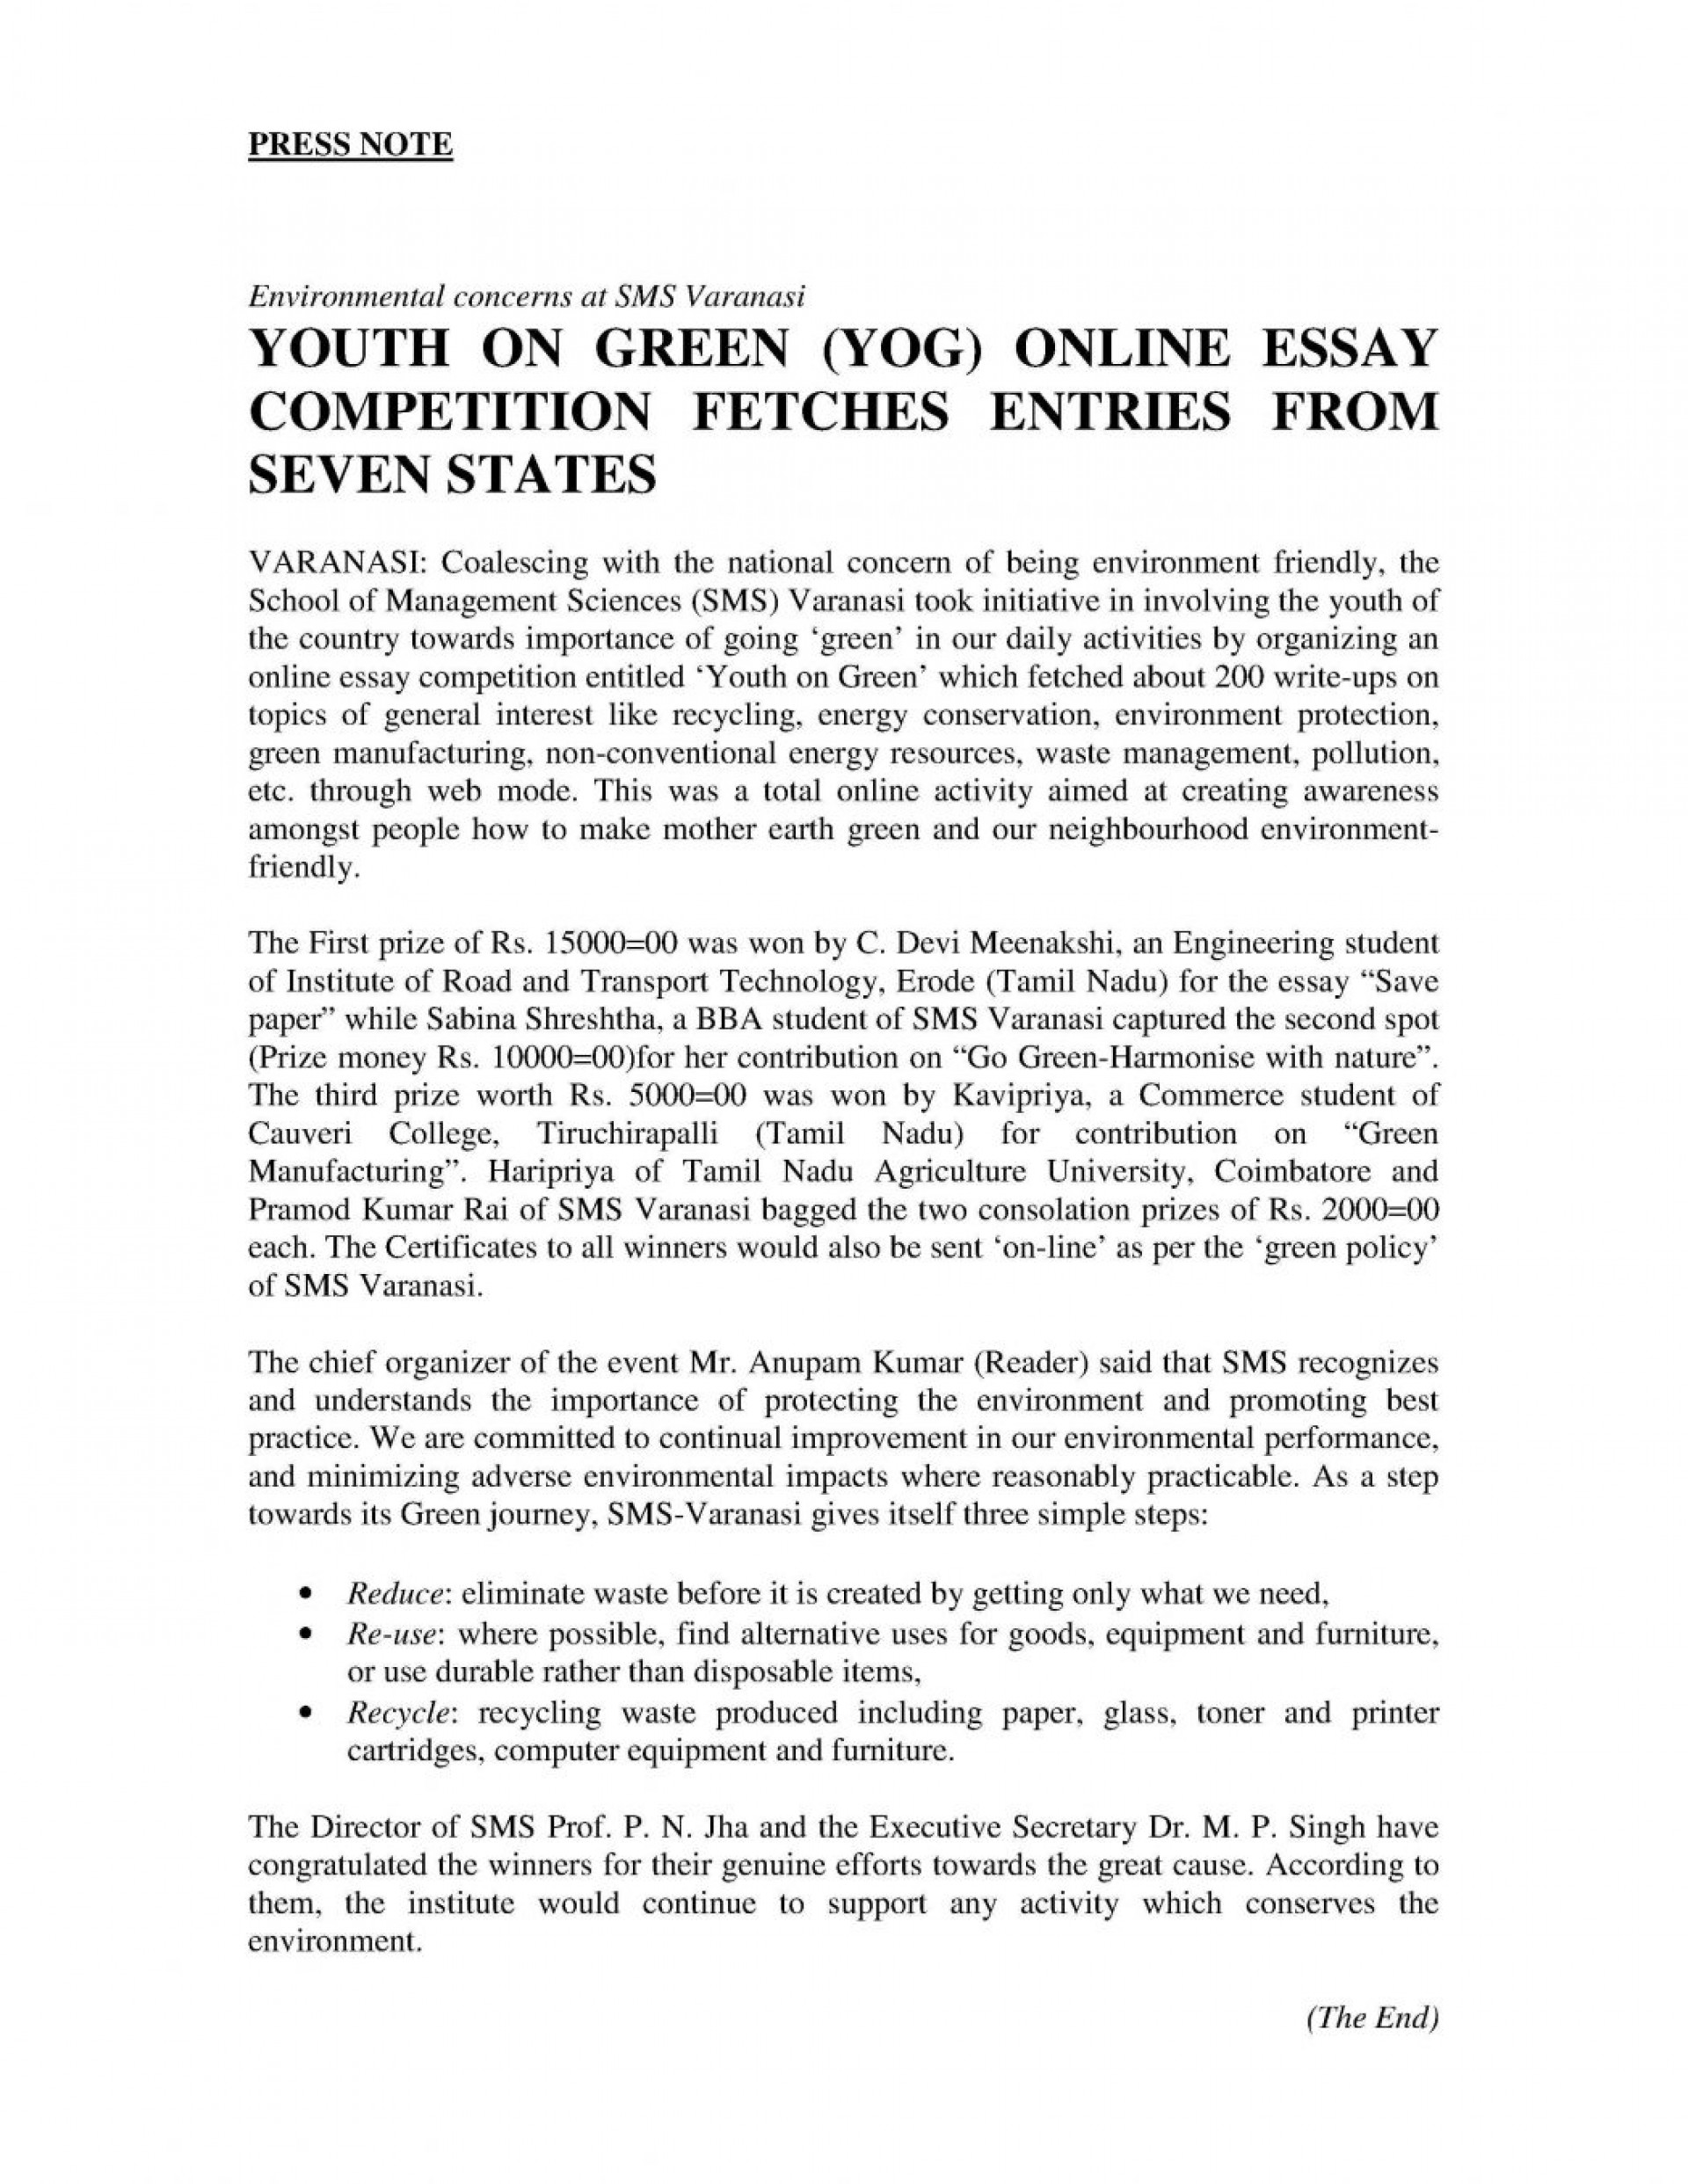 020 Best Essays For College Essay On Good Habits How Tot Application Online Yog Press Re About Yourself Examples Your Background Failure Prompt Off Hook 1048x1356 Example Amazing To Start An A Definition Begin With Dictionary 1920